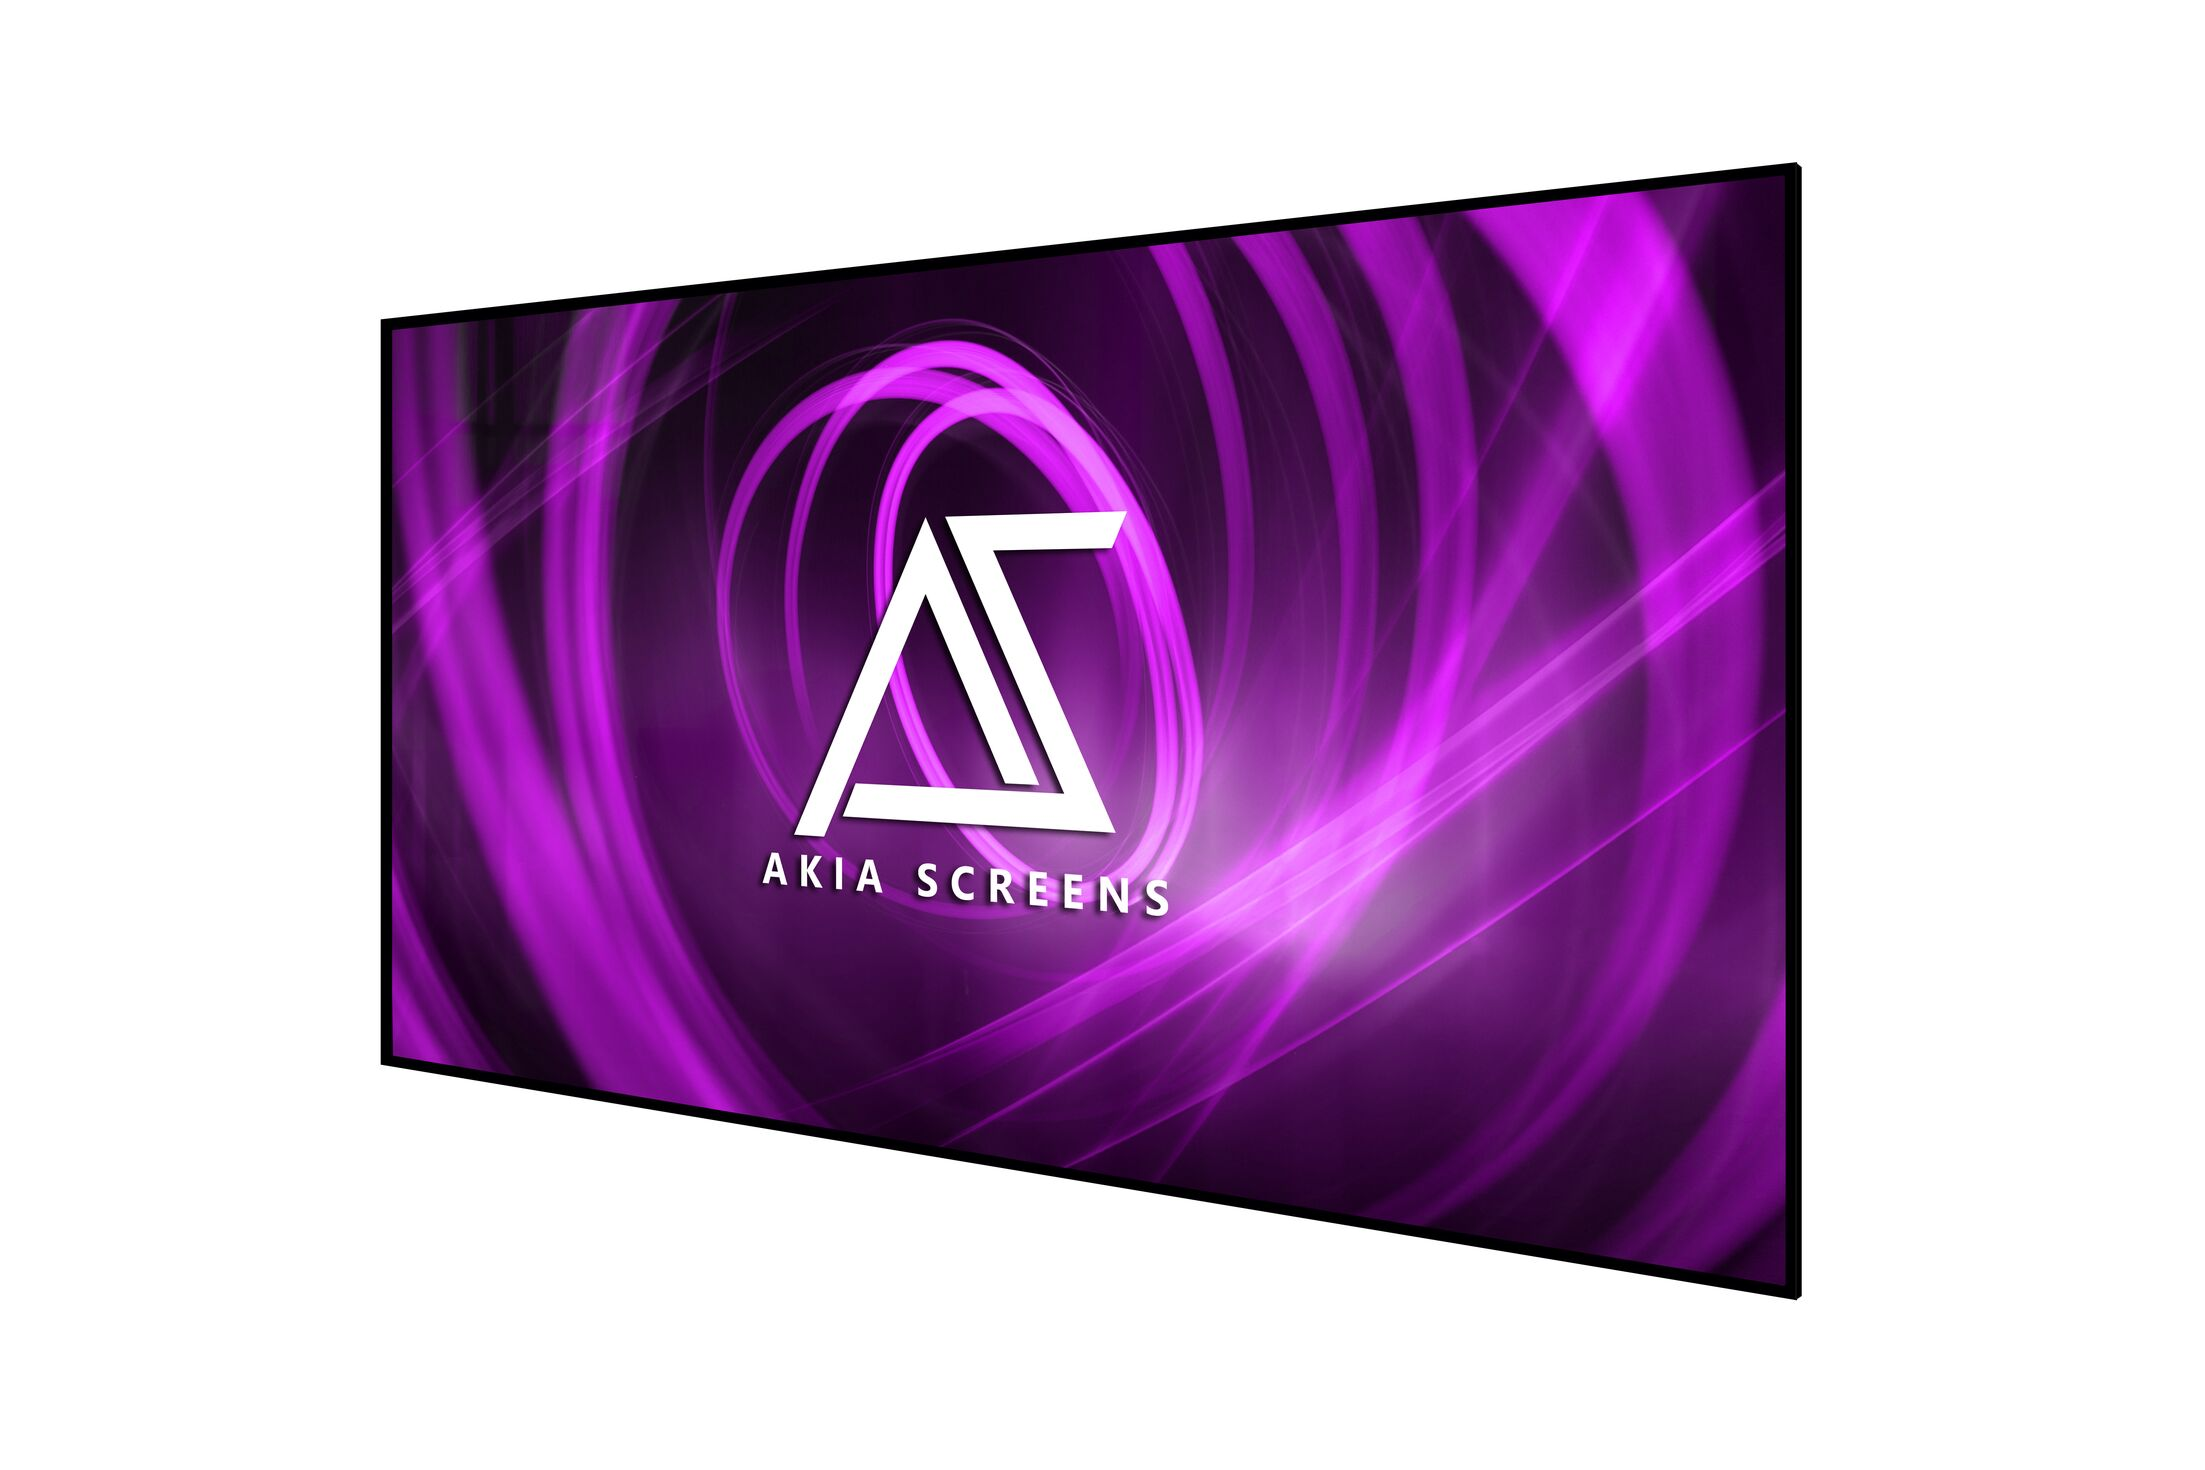 Akia Edge Free White Fixed Frame Projector Screen Viewing Area: 61.3